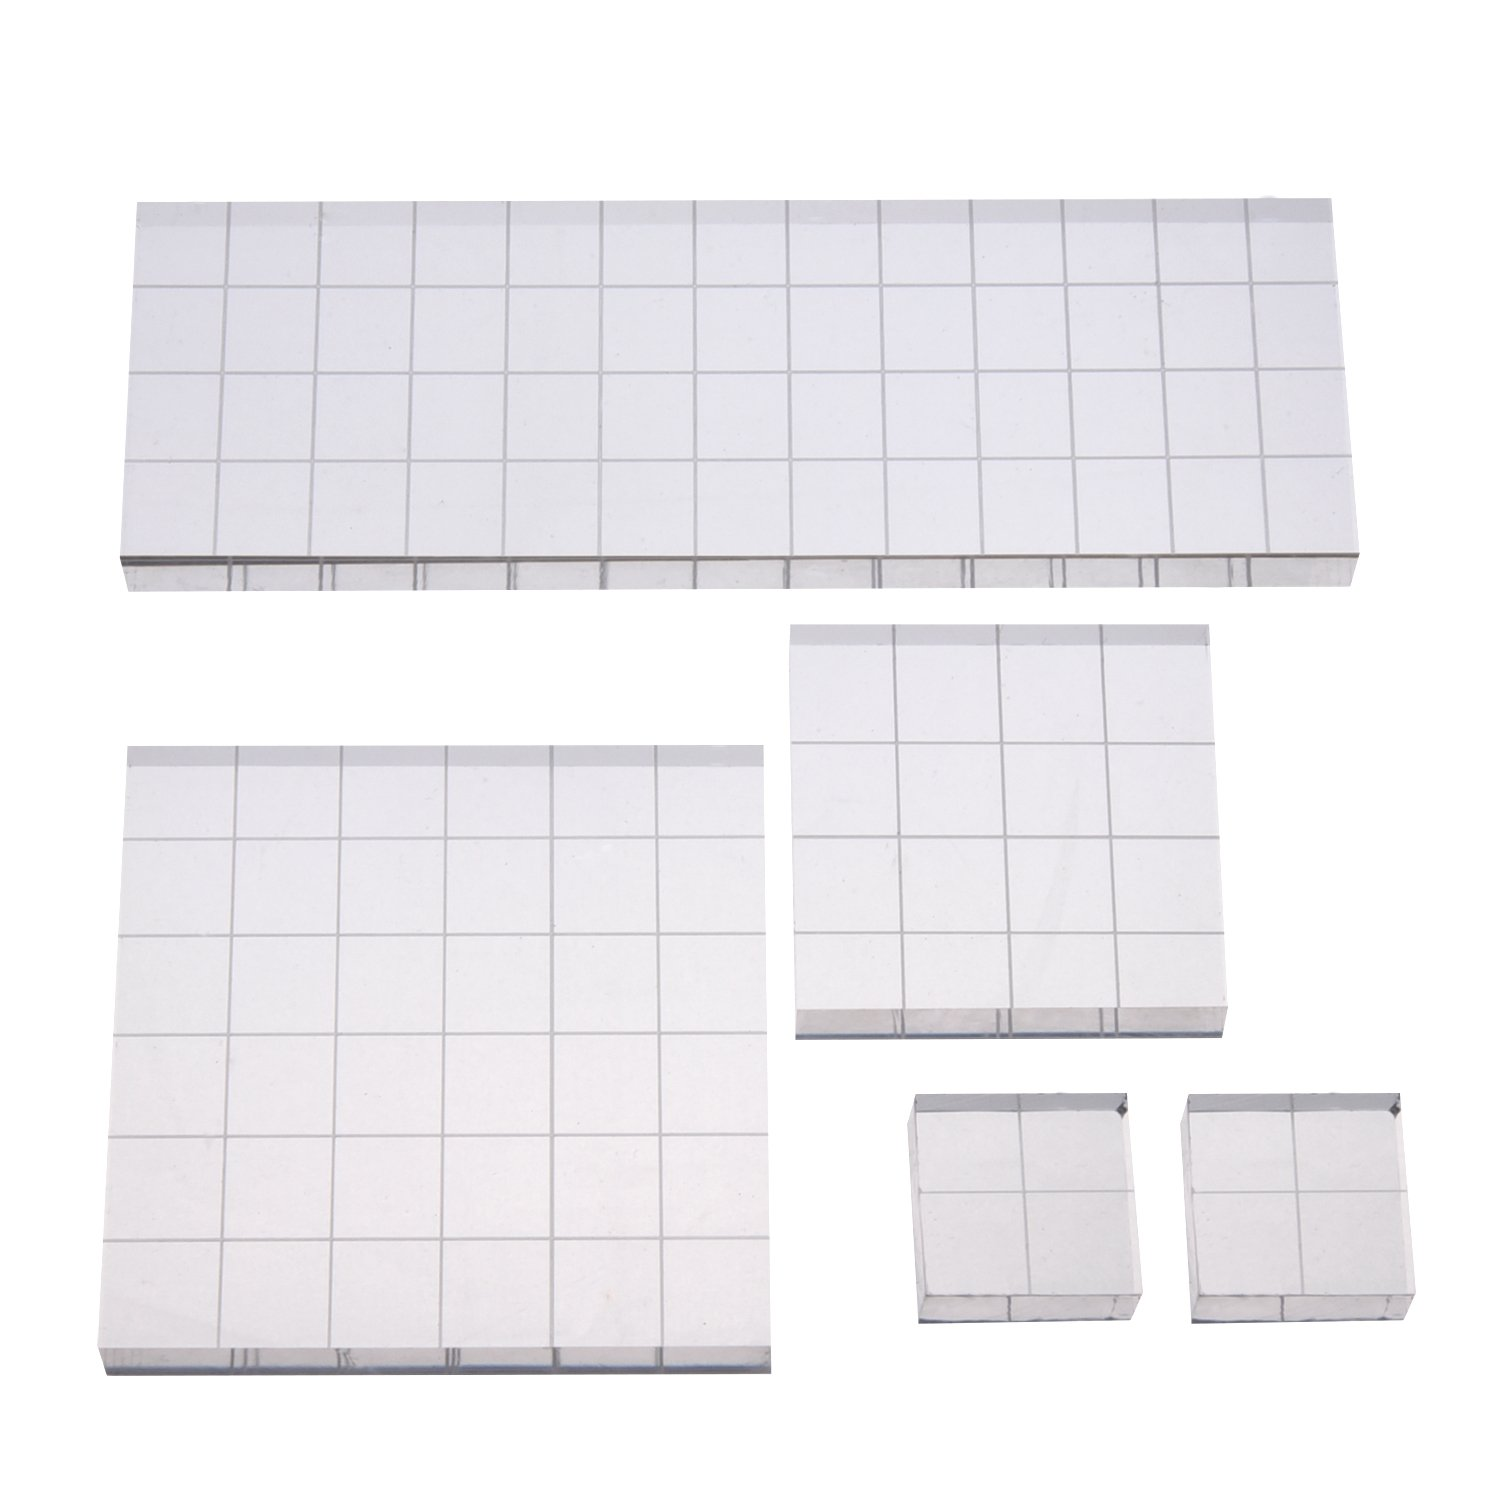 Shappy Stamp Block Acrylic Block with Grid Lines, Assorted Sizes, 5 Pieces 4336990007